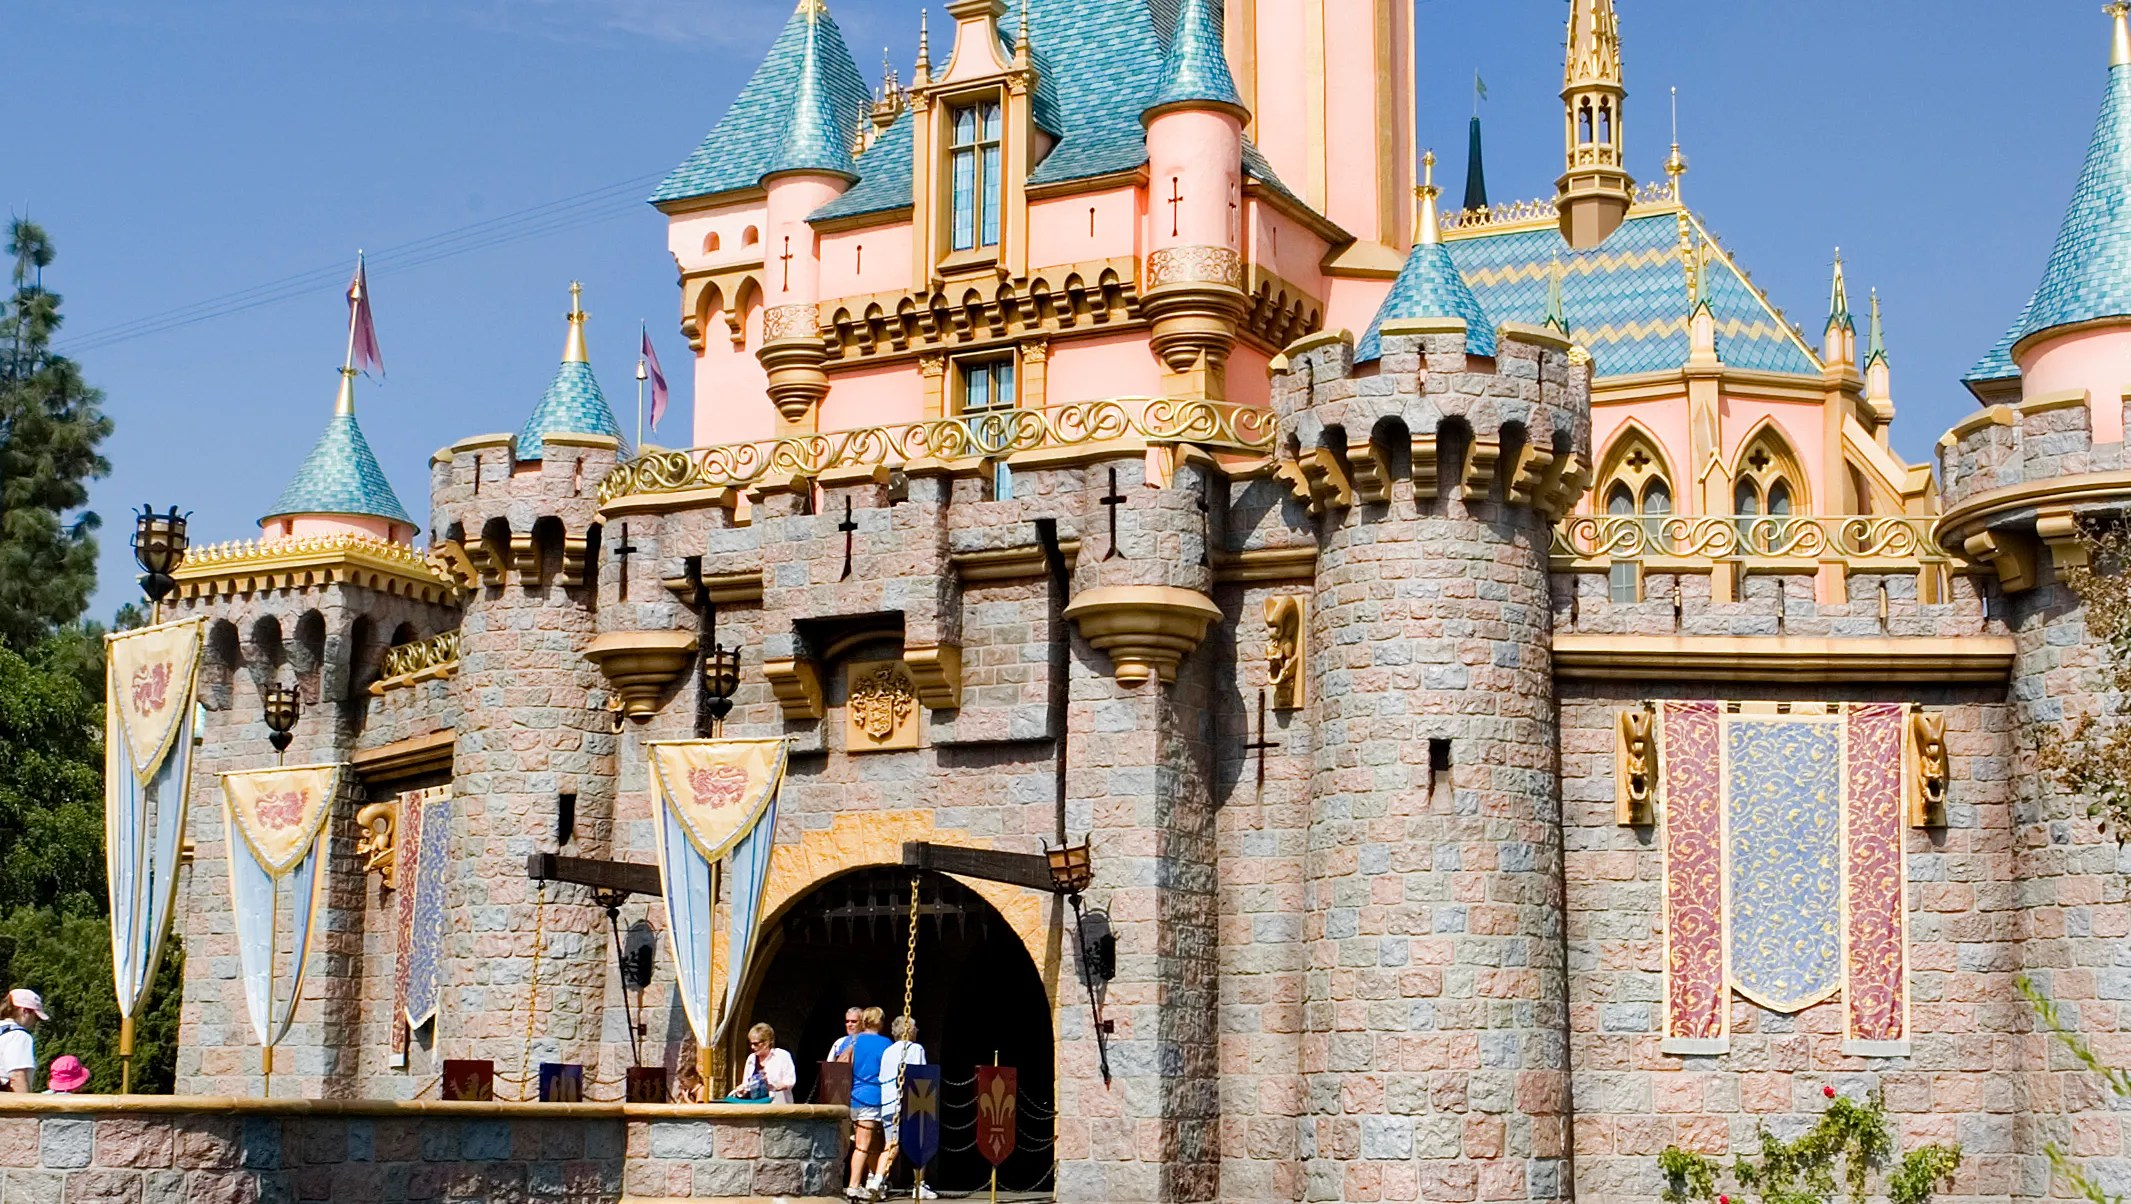 Disneyland Walls Iconic Sleeping Beauty Castle